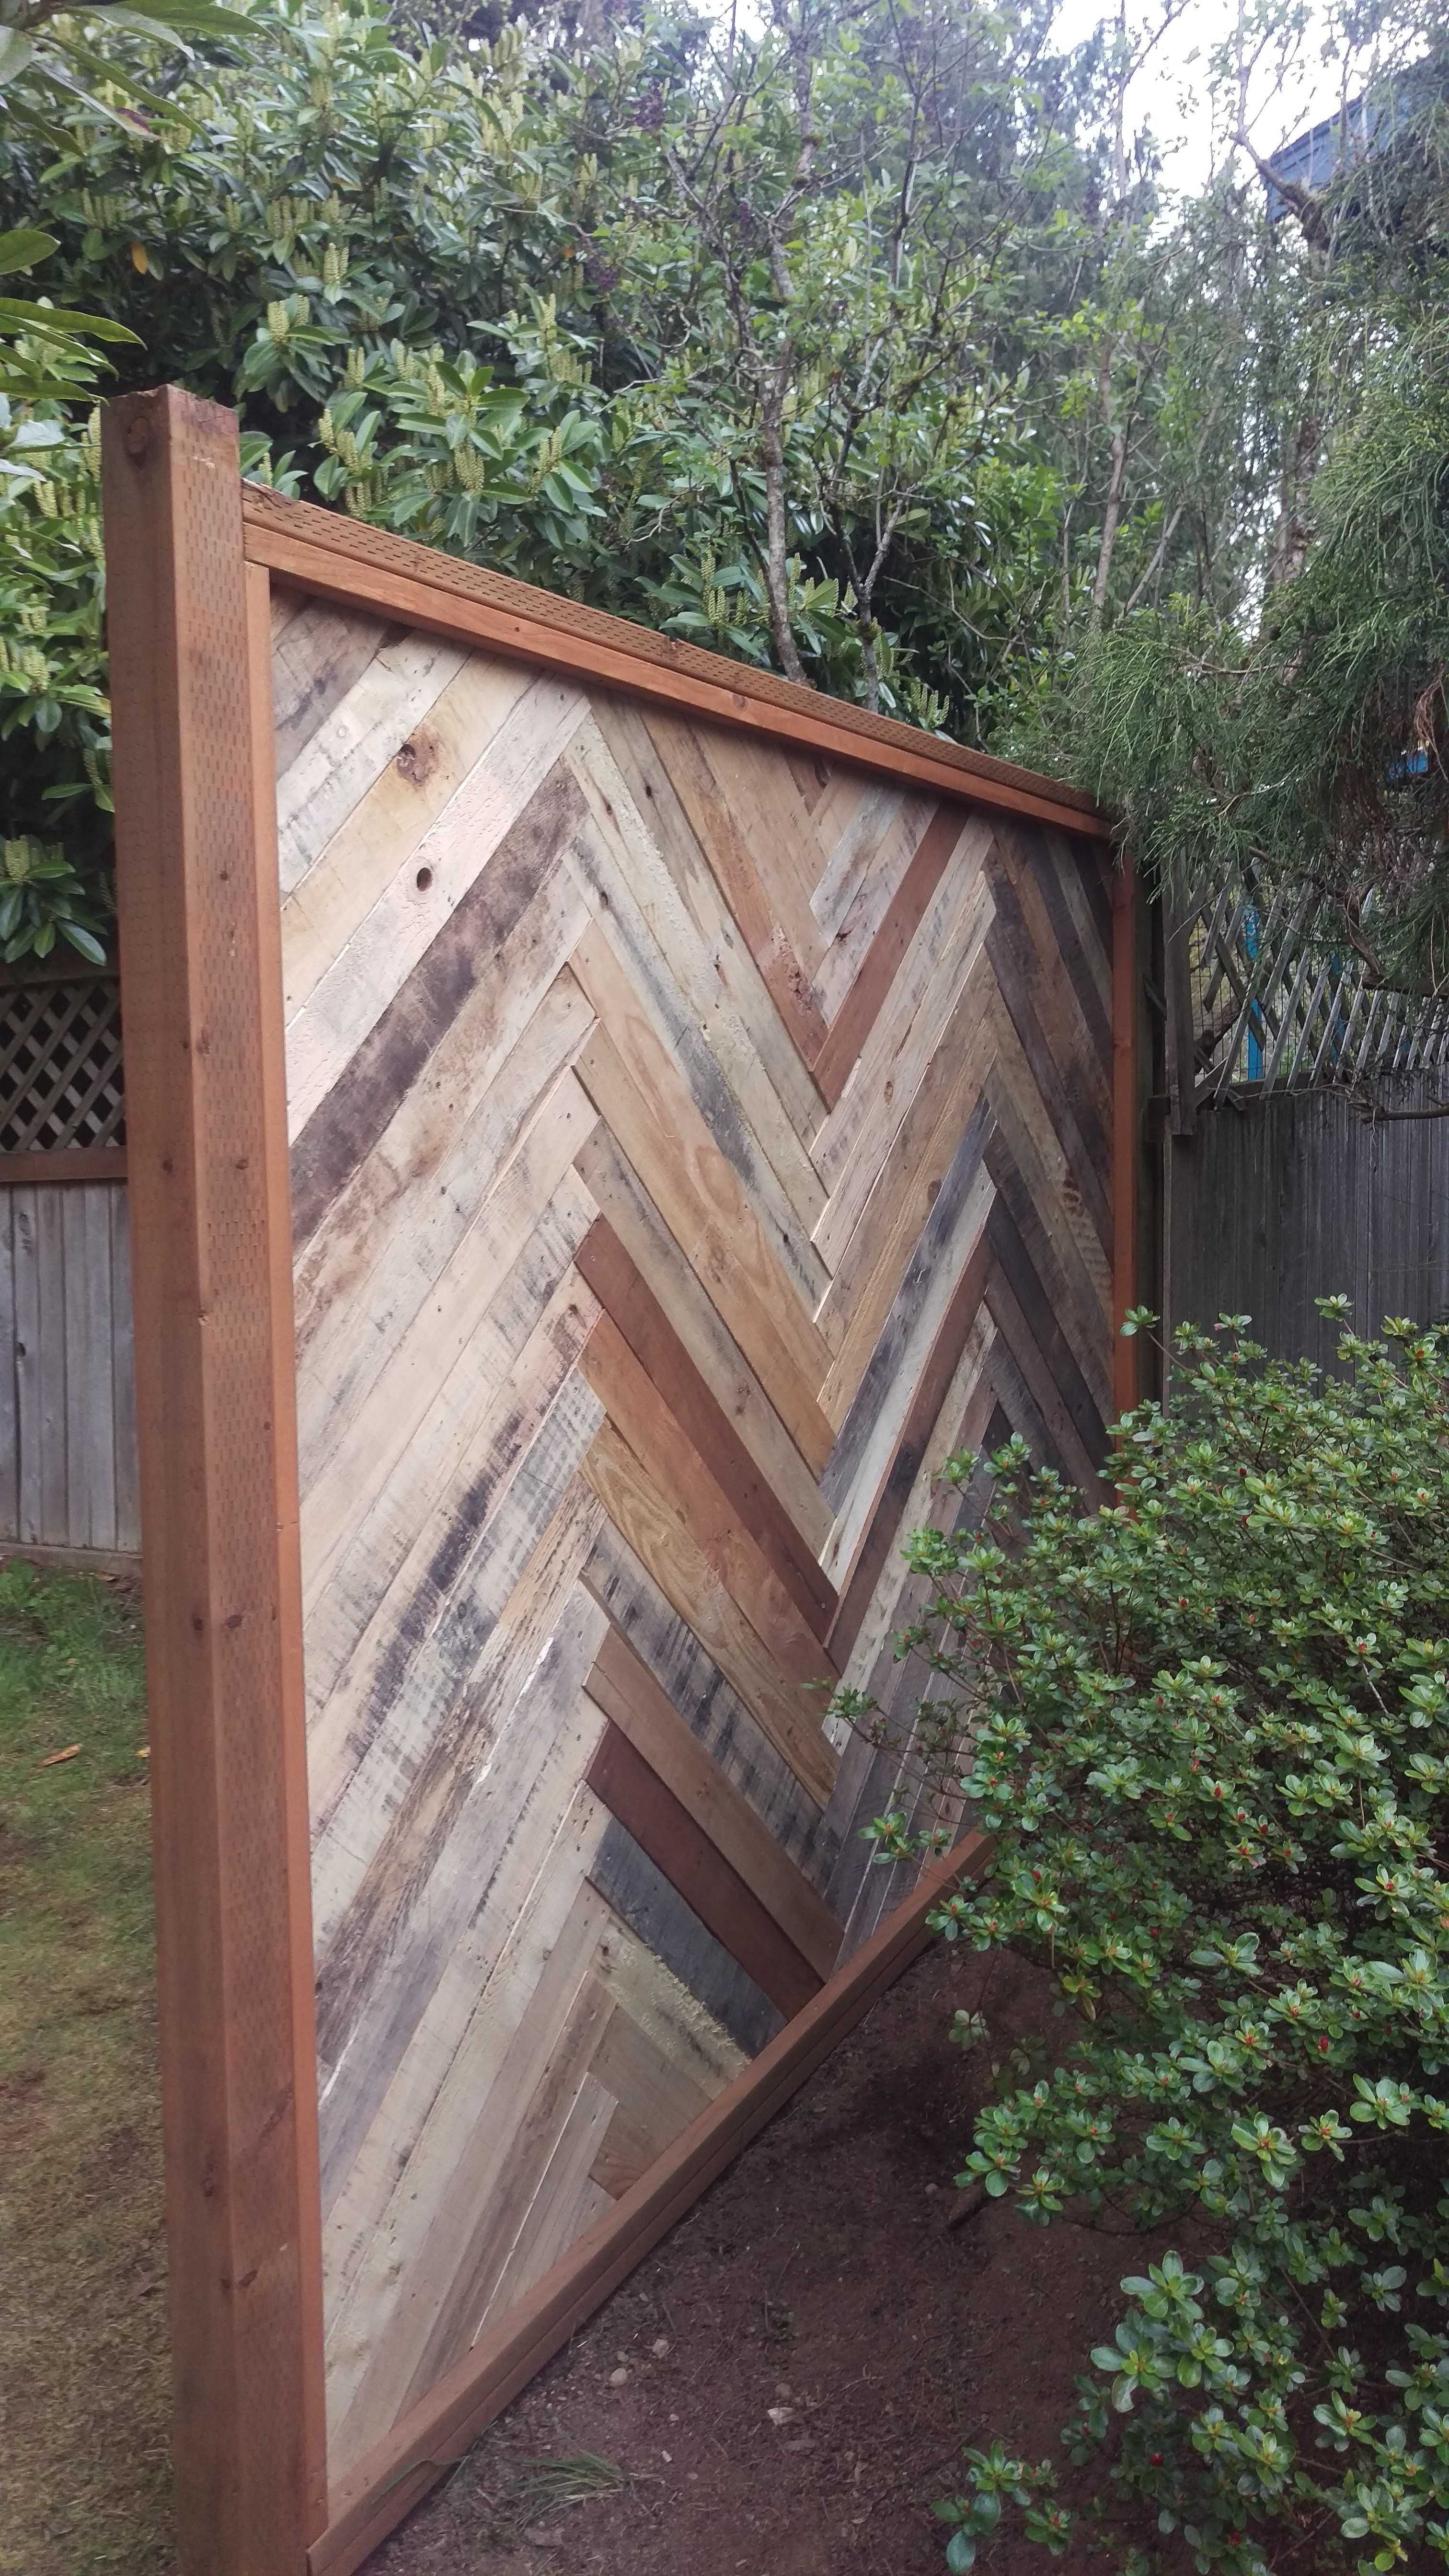 Separation De Terrasse Backyard Fence Made With Repurposed Pallets Séparation Terrasse